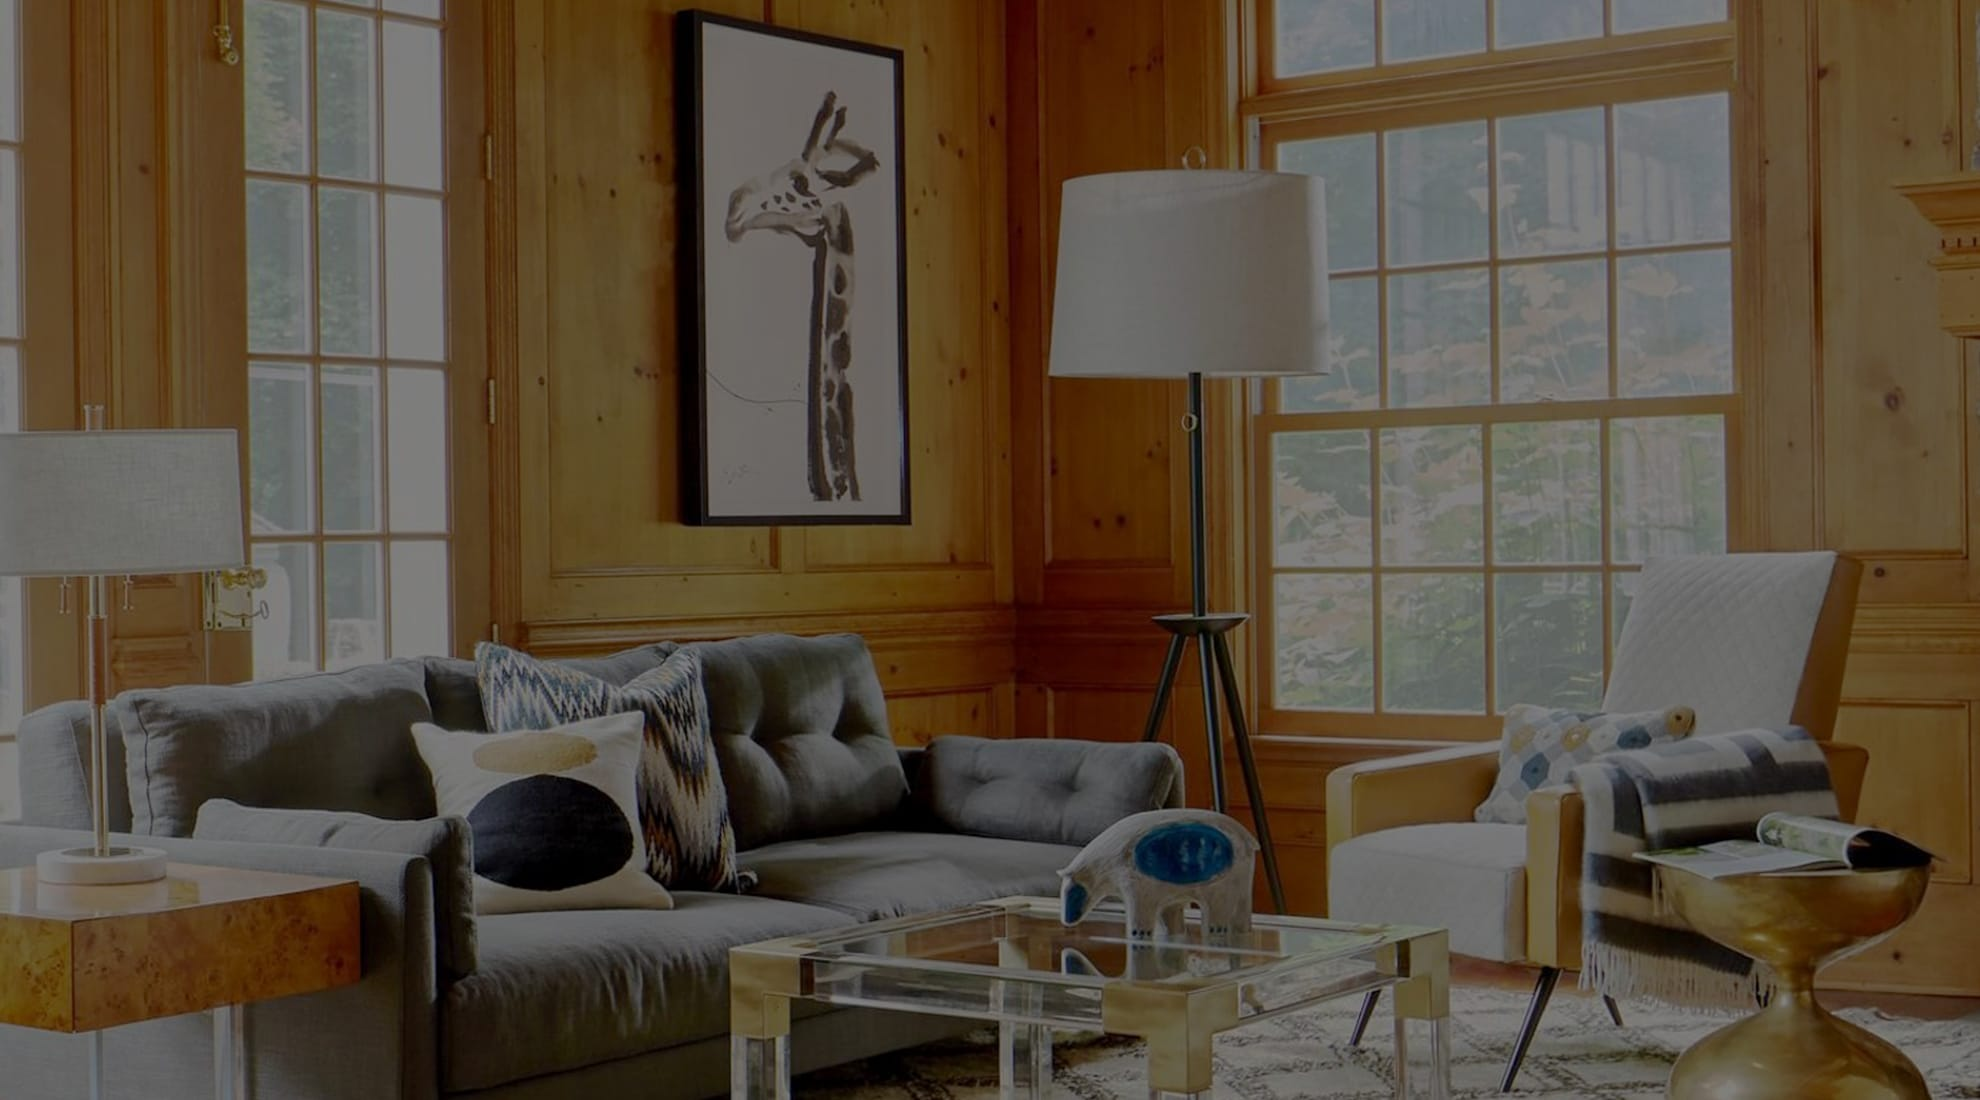 living room decor styles lime green and grey interior design 6 tips to mix decorating at lumens com for mixing